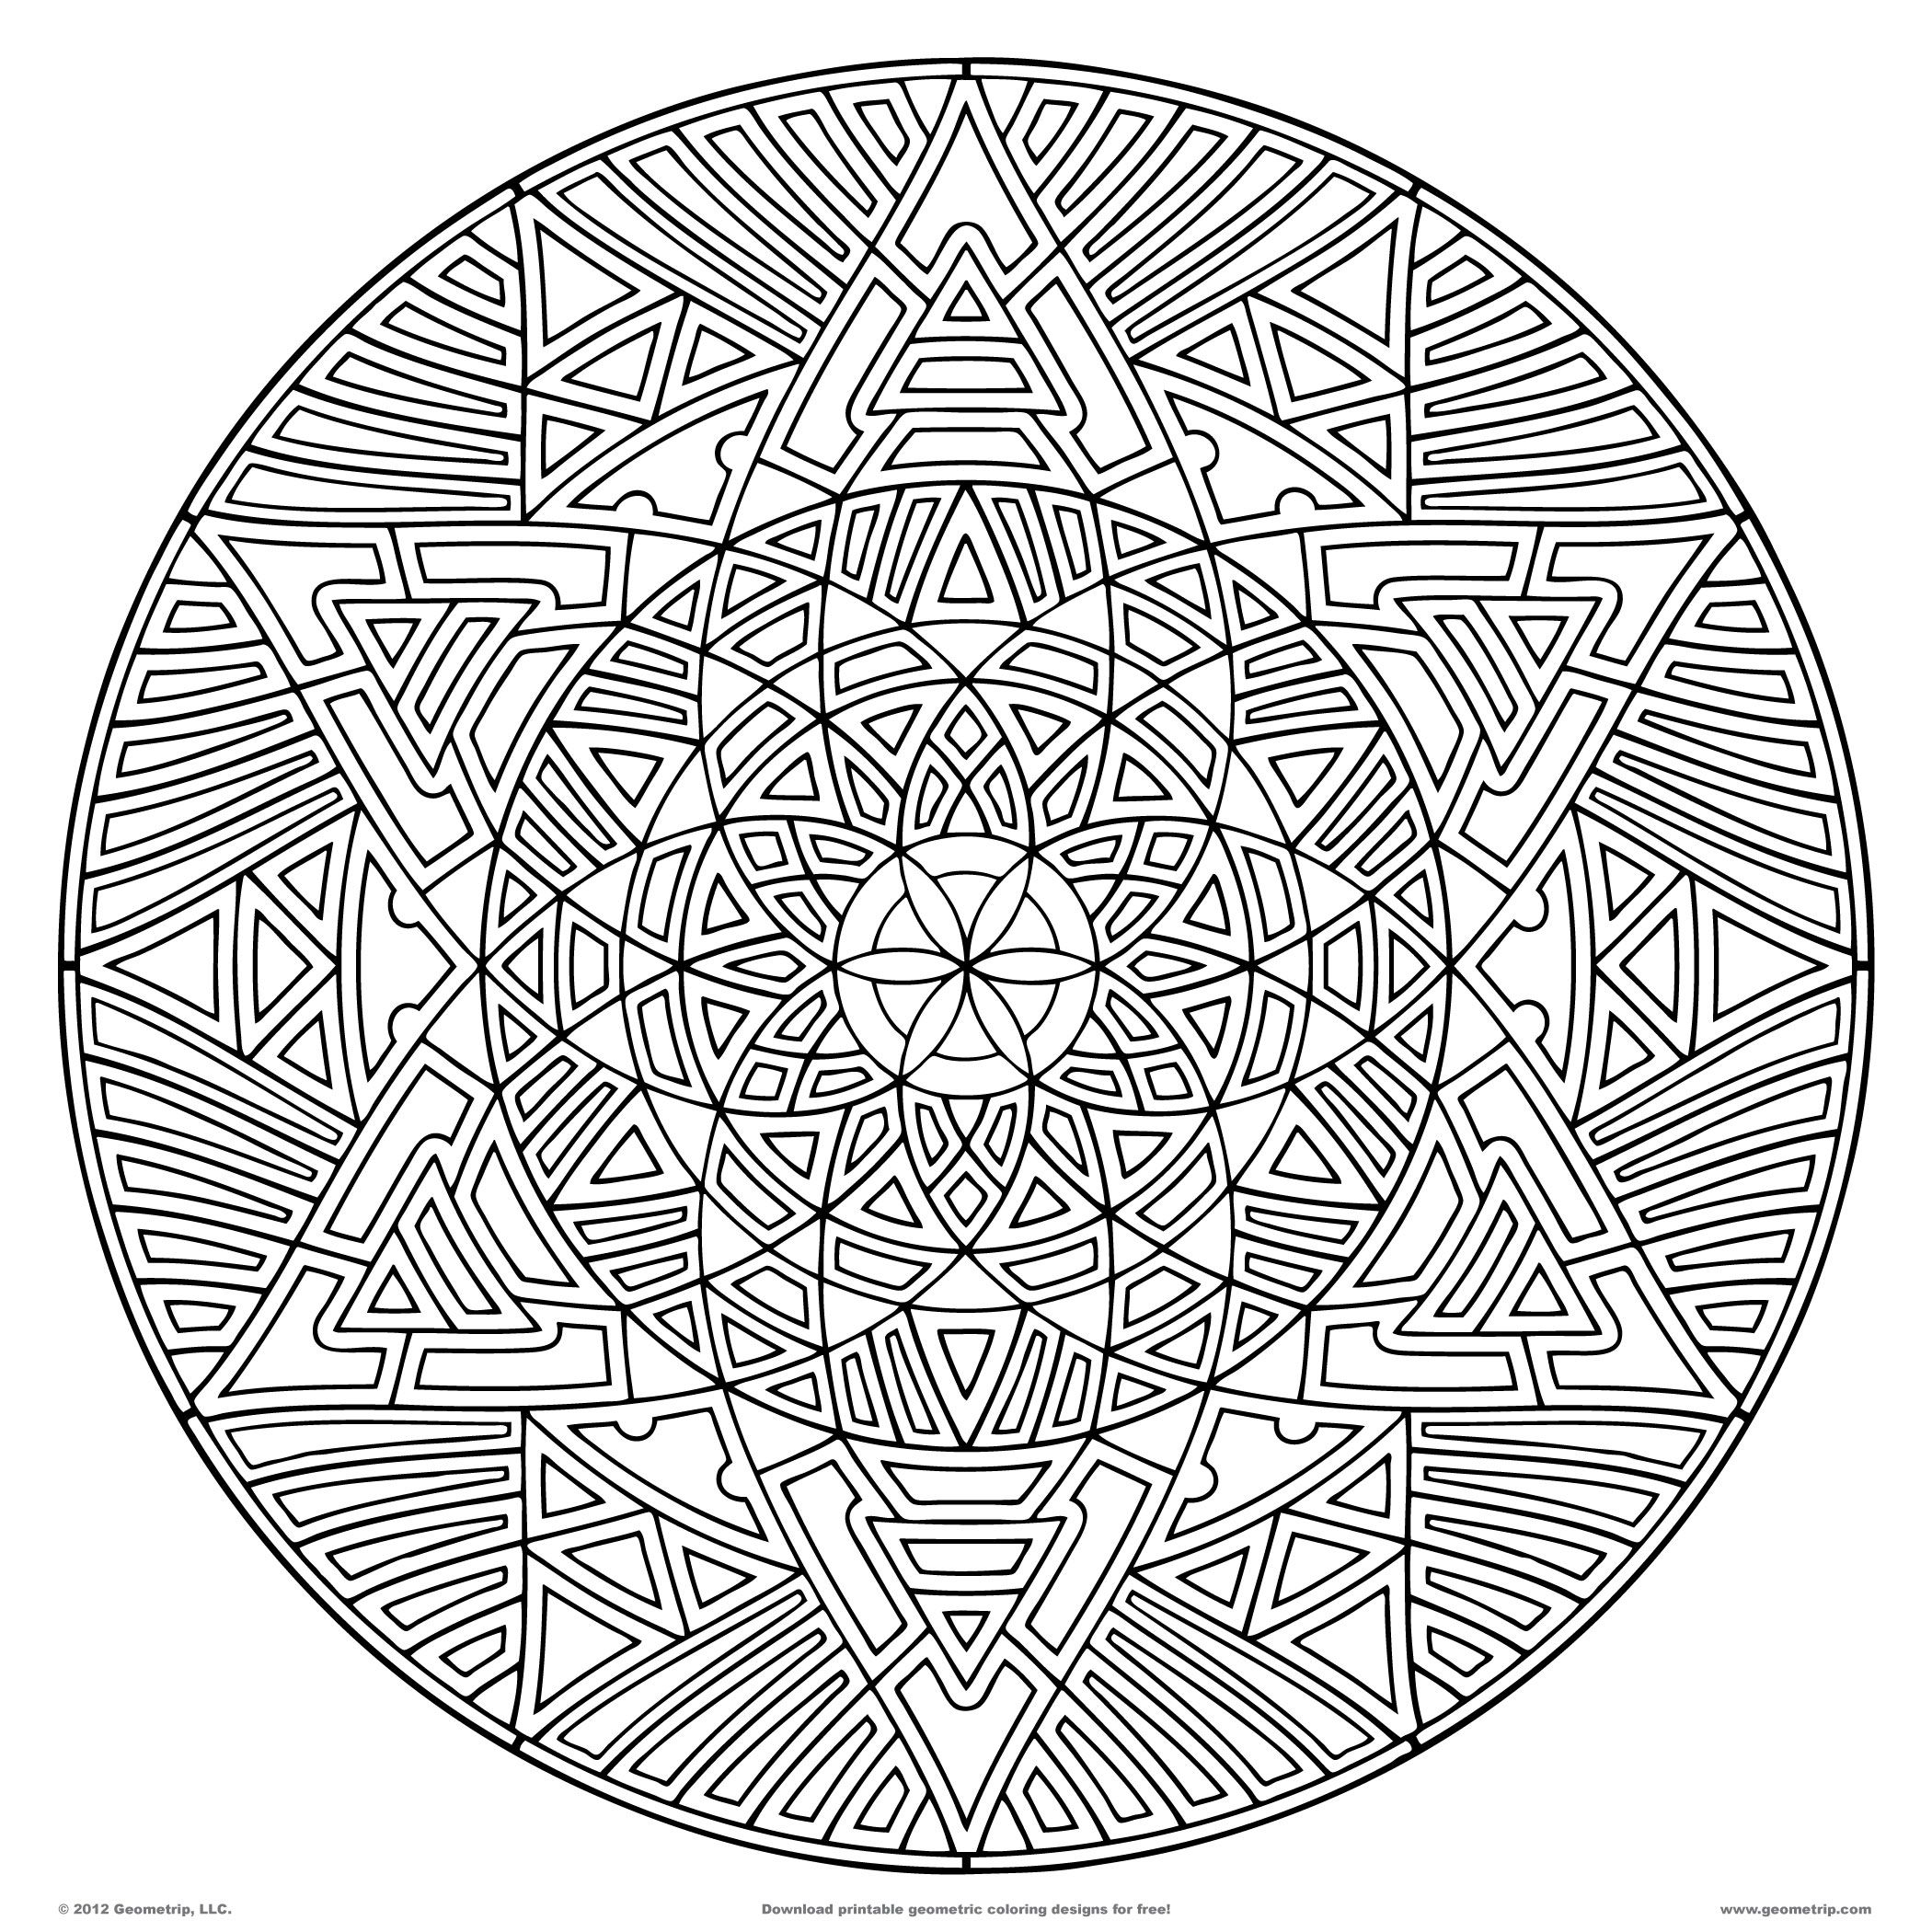 Hard mandala coloring pages for adults - Intricate Abstract Coloring Pages For Adults Intricate Coloring Pages Prints And Colors Difficult Level Mandala Coloring Pages